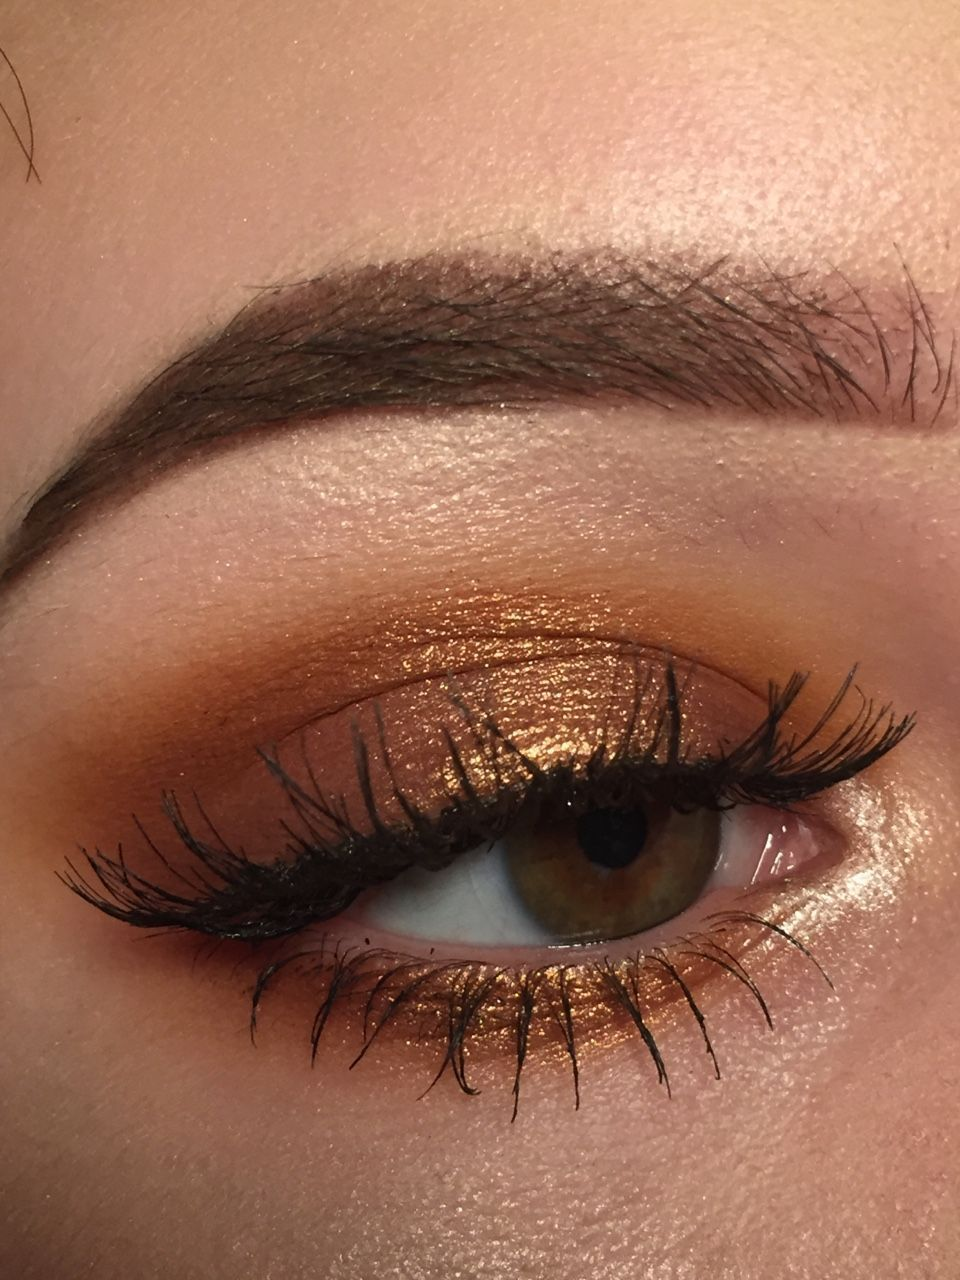 10 Stunning Gold Eyeshadow Looks That Are Must-Try | I AM & CO Natural Makeup For Brown Eyes Eyeshadow gold MustTry Stunning